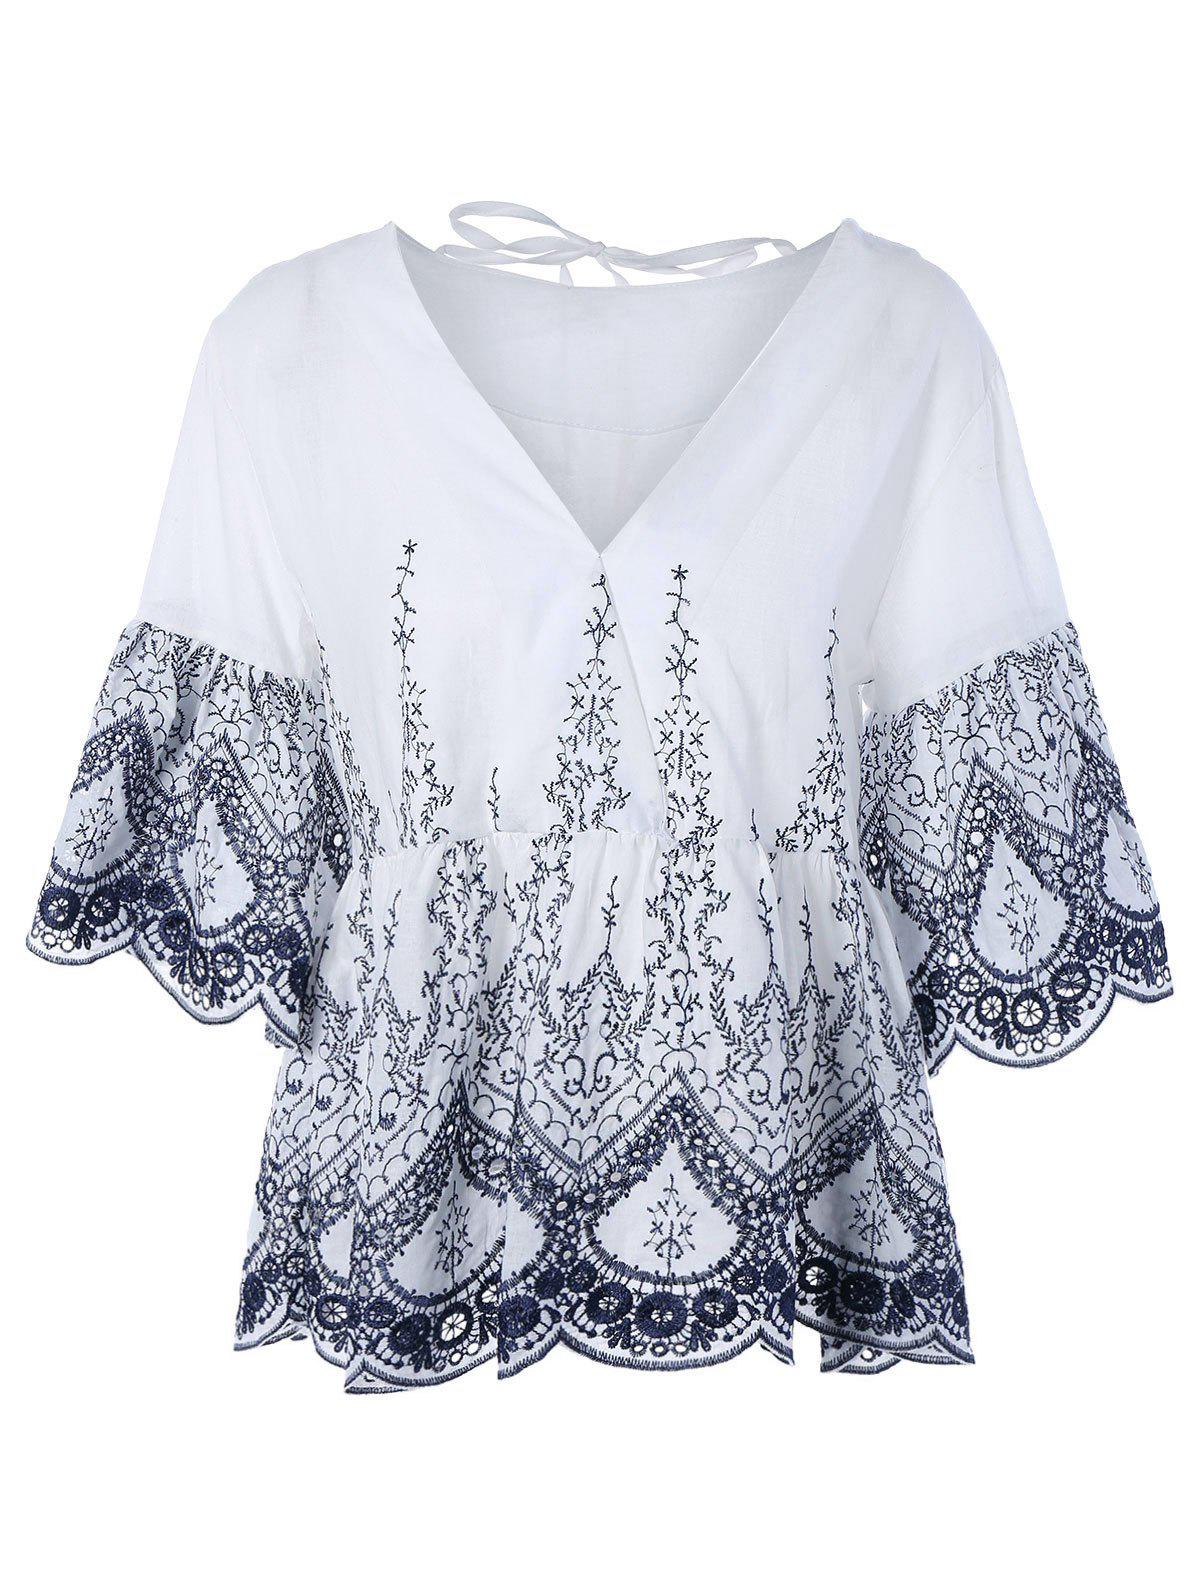 Ruffle V Neck Loose-Fitting Embroidered Blouse - WHITE ONE SIZE